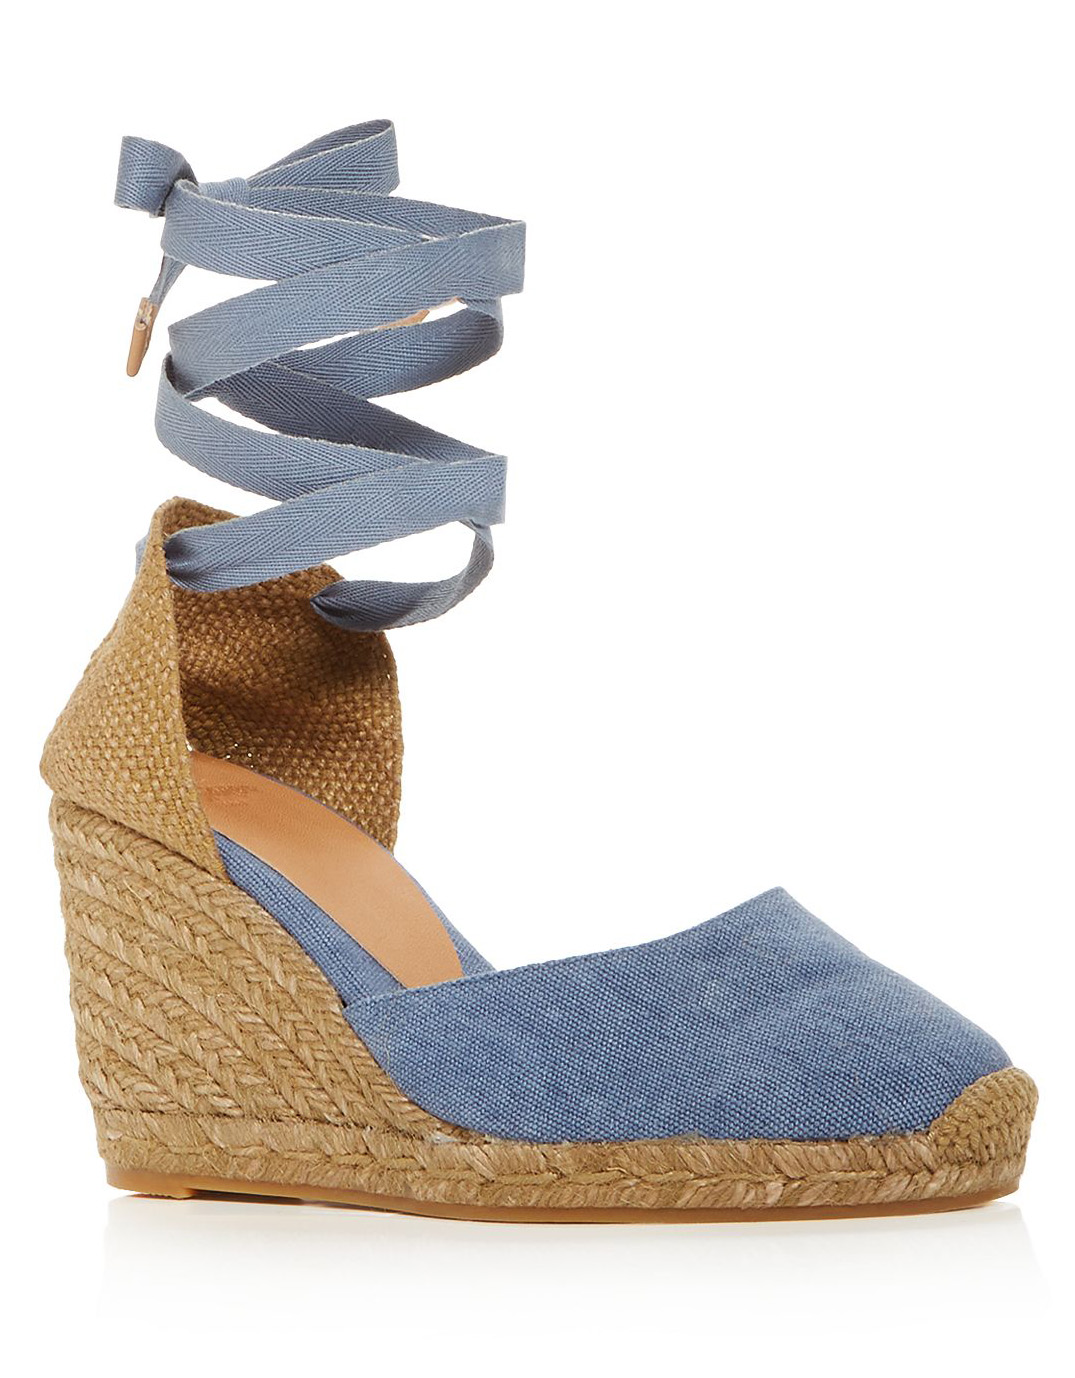 Castañer Women's Carina Ankle-Tie Espadrille Wedge Sandals at Bloomingdale's